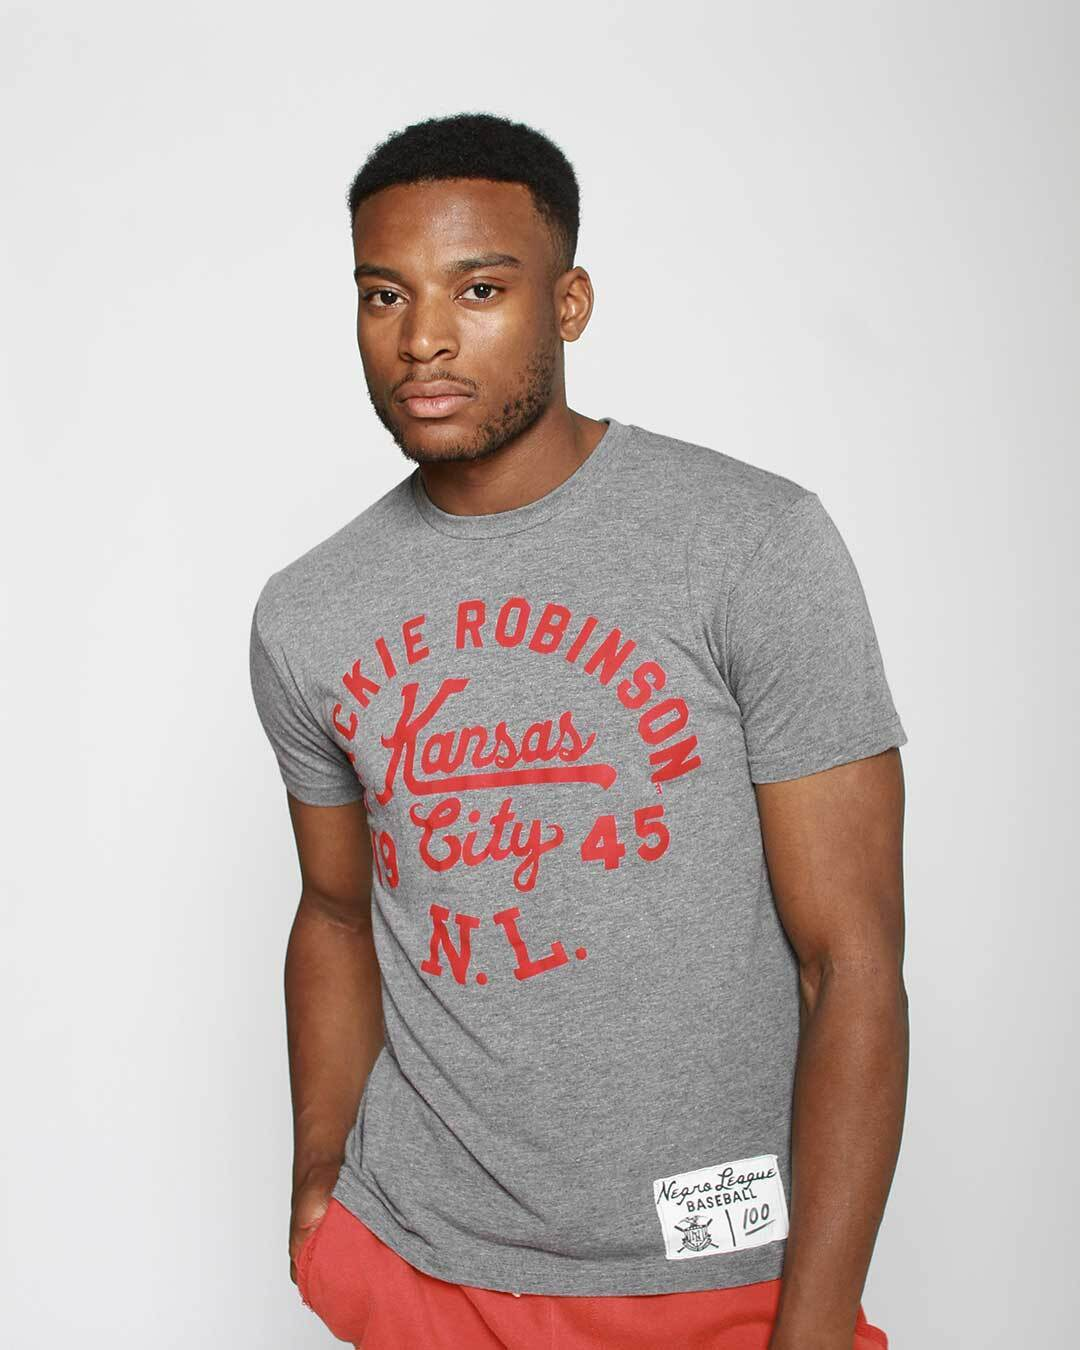 Jackie Robinson Negro League Tee - Roots of Inc dba Roots of Fight